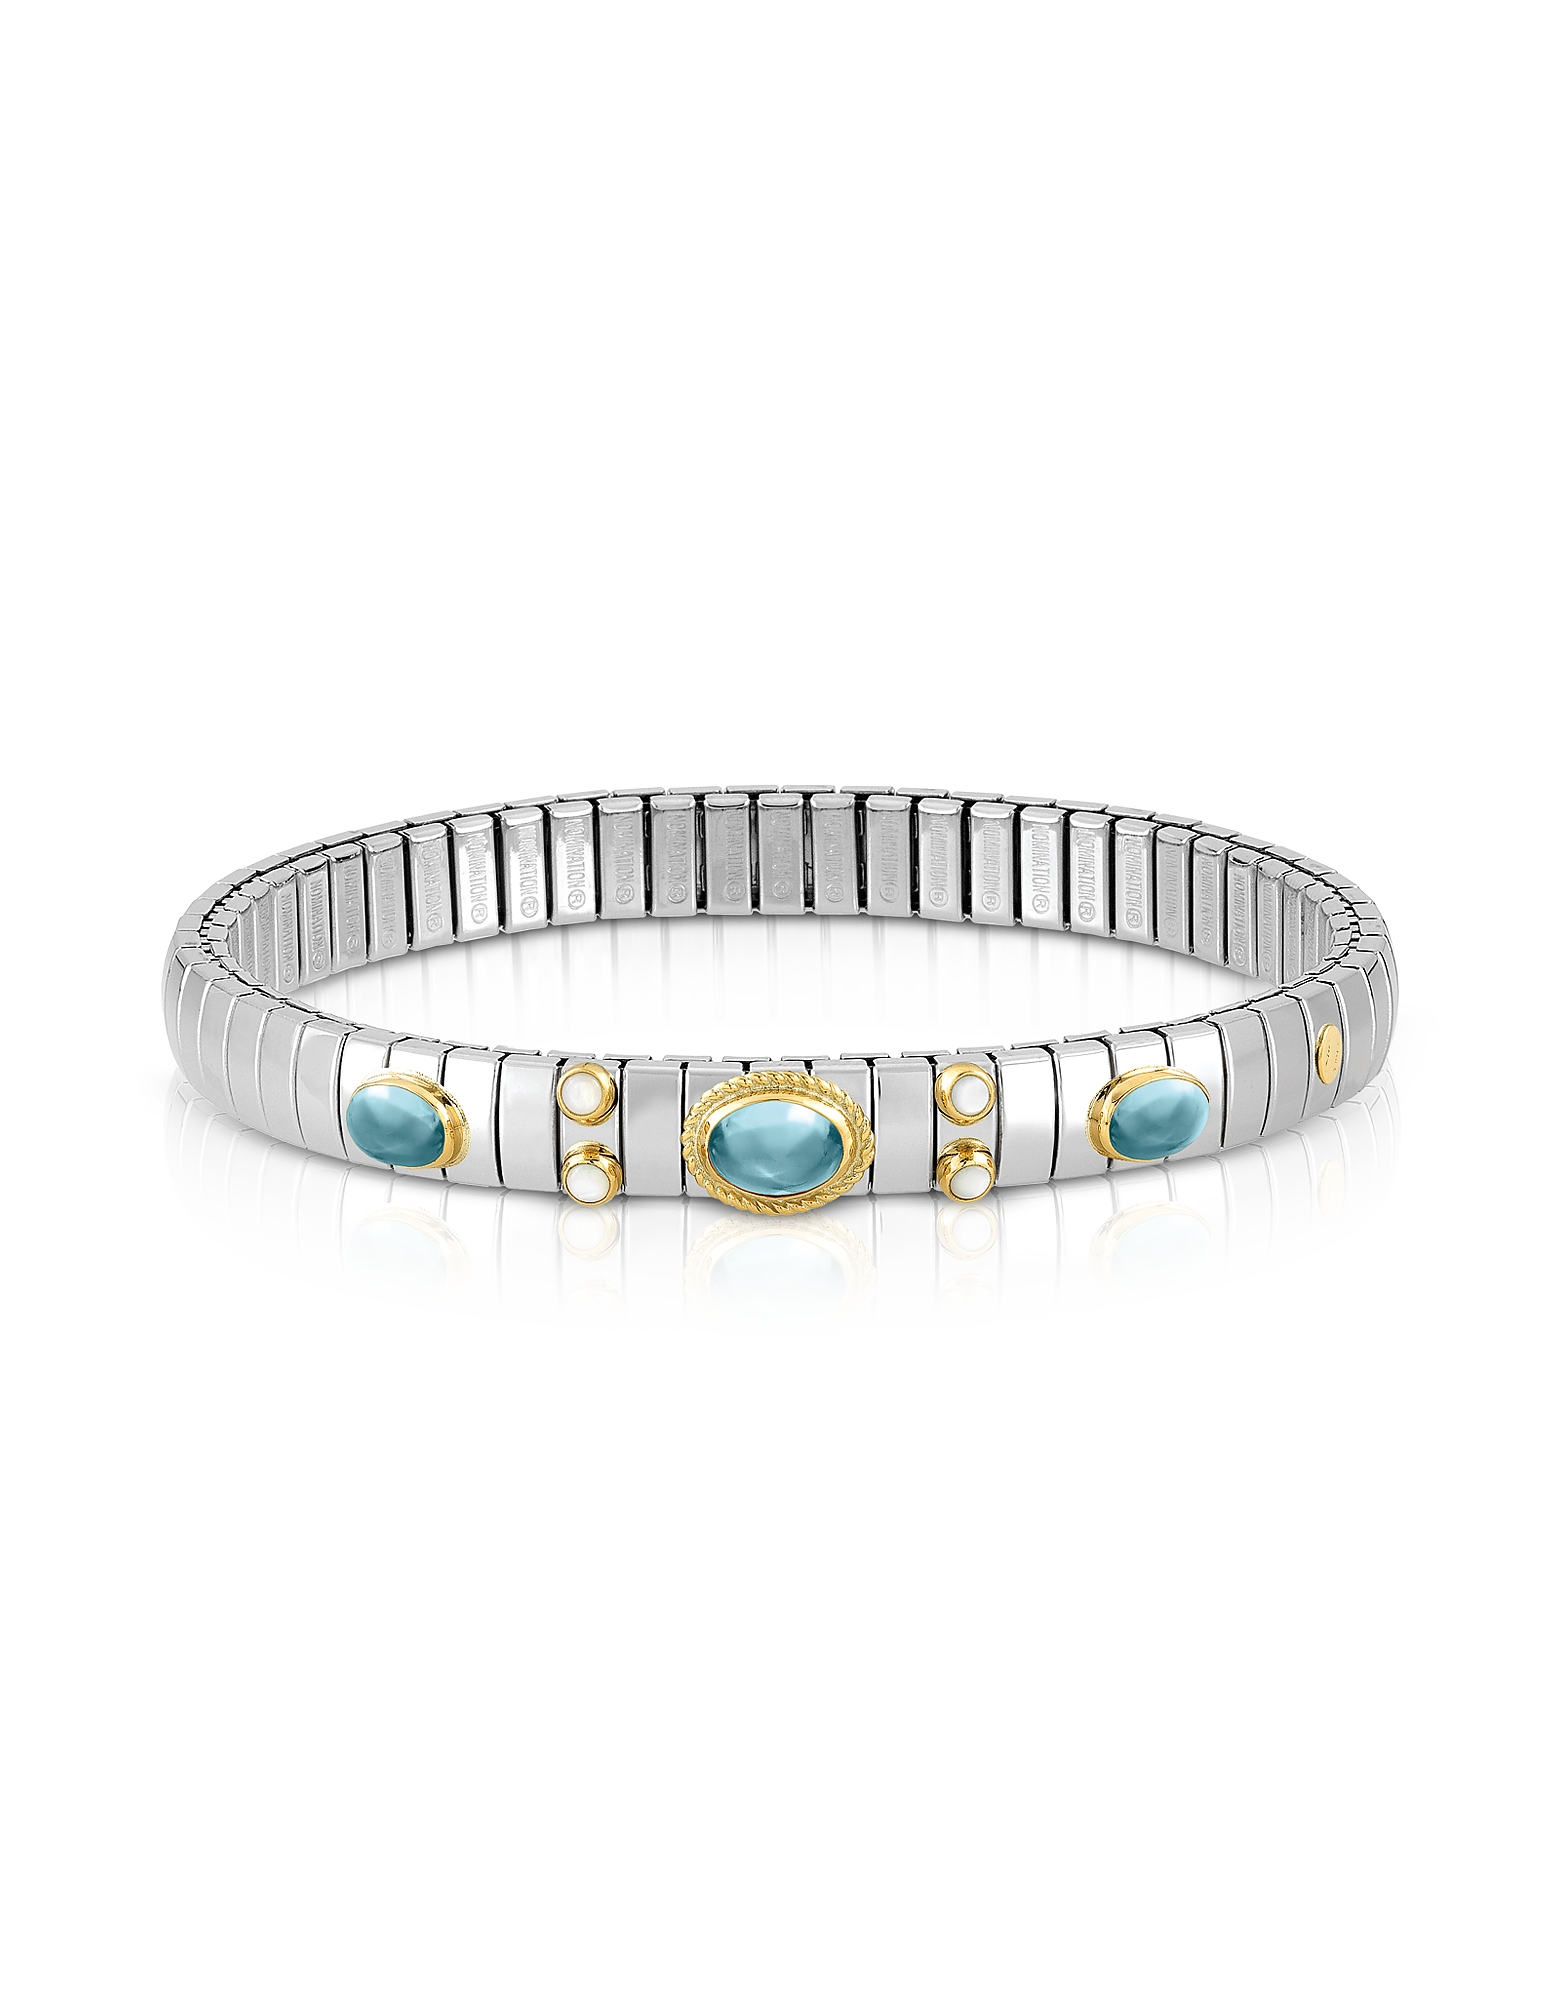 Stainless Steel Women's Bracelet w/Light Blue Topaz Oval Beads